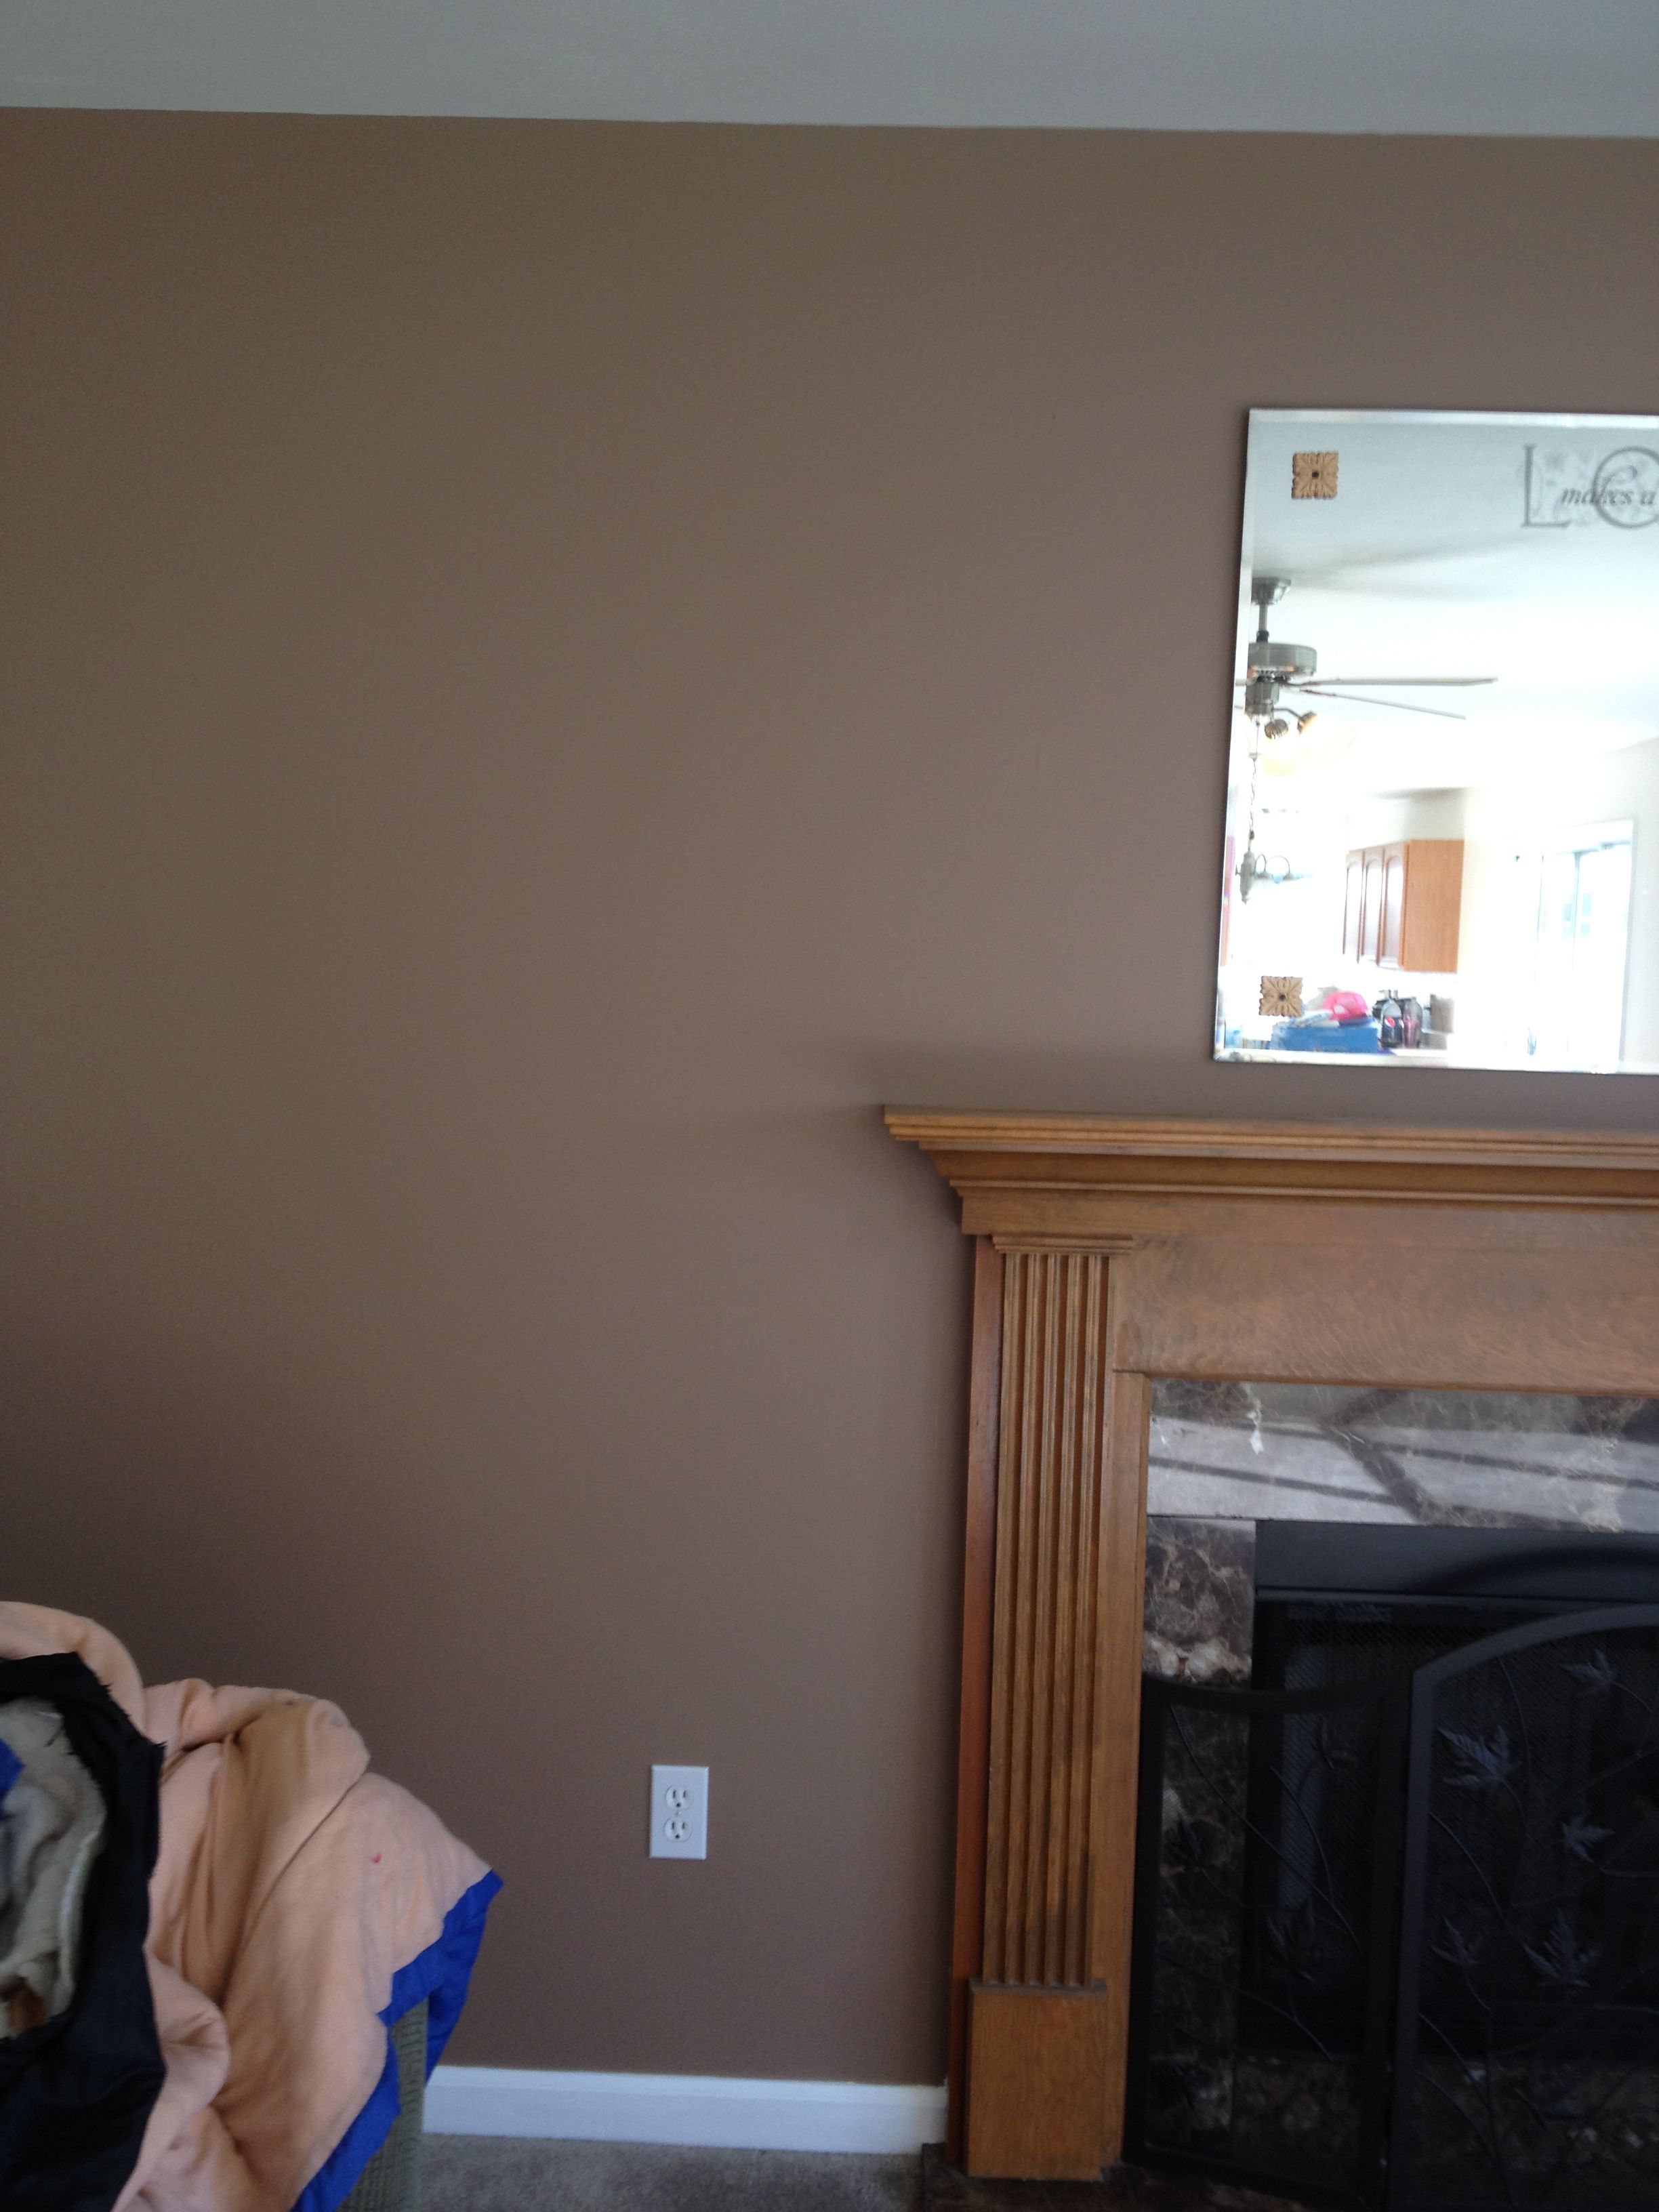 Bedroom Paint Ideas Behr behr cozy cottage and blanket brown wall paint. | house projects